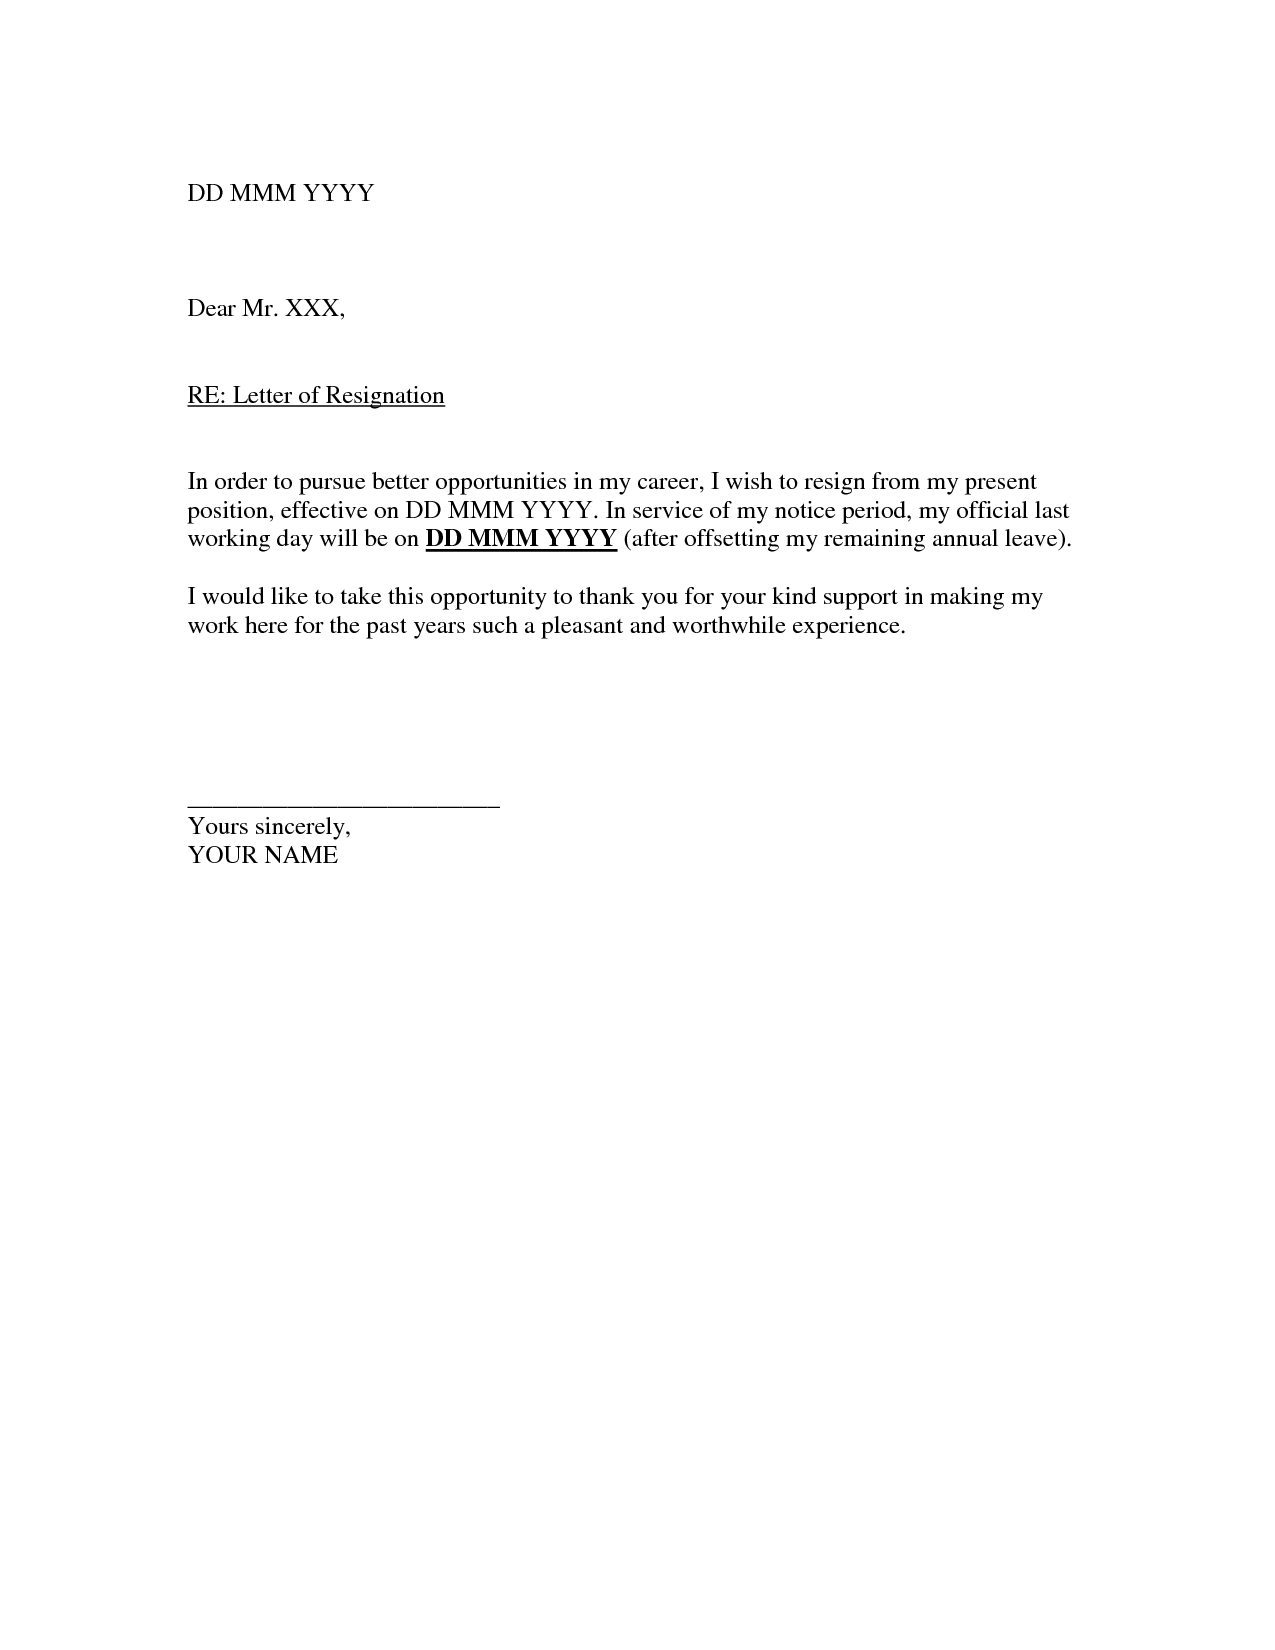 related to resignation letter template letters of resignation templates formal resignation letter sample resignation letter - Template Letters Of Resignation